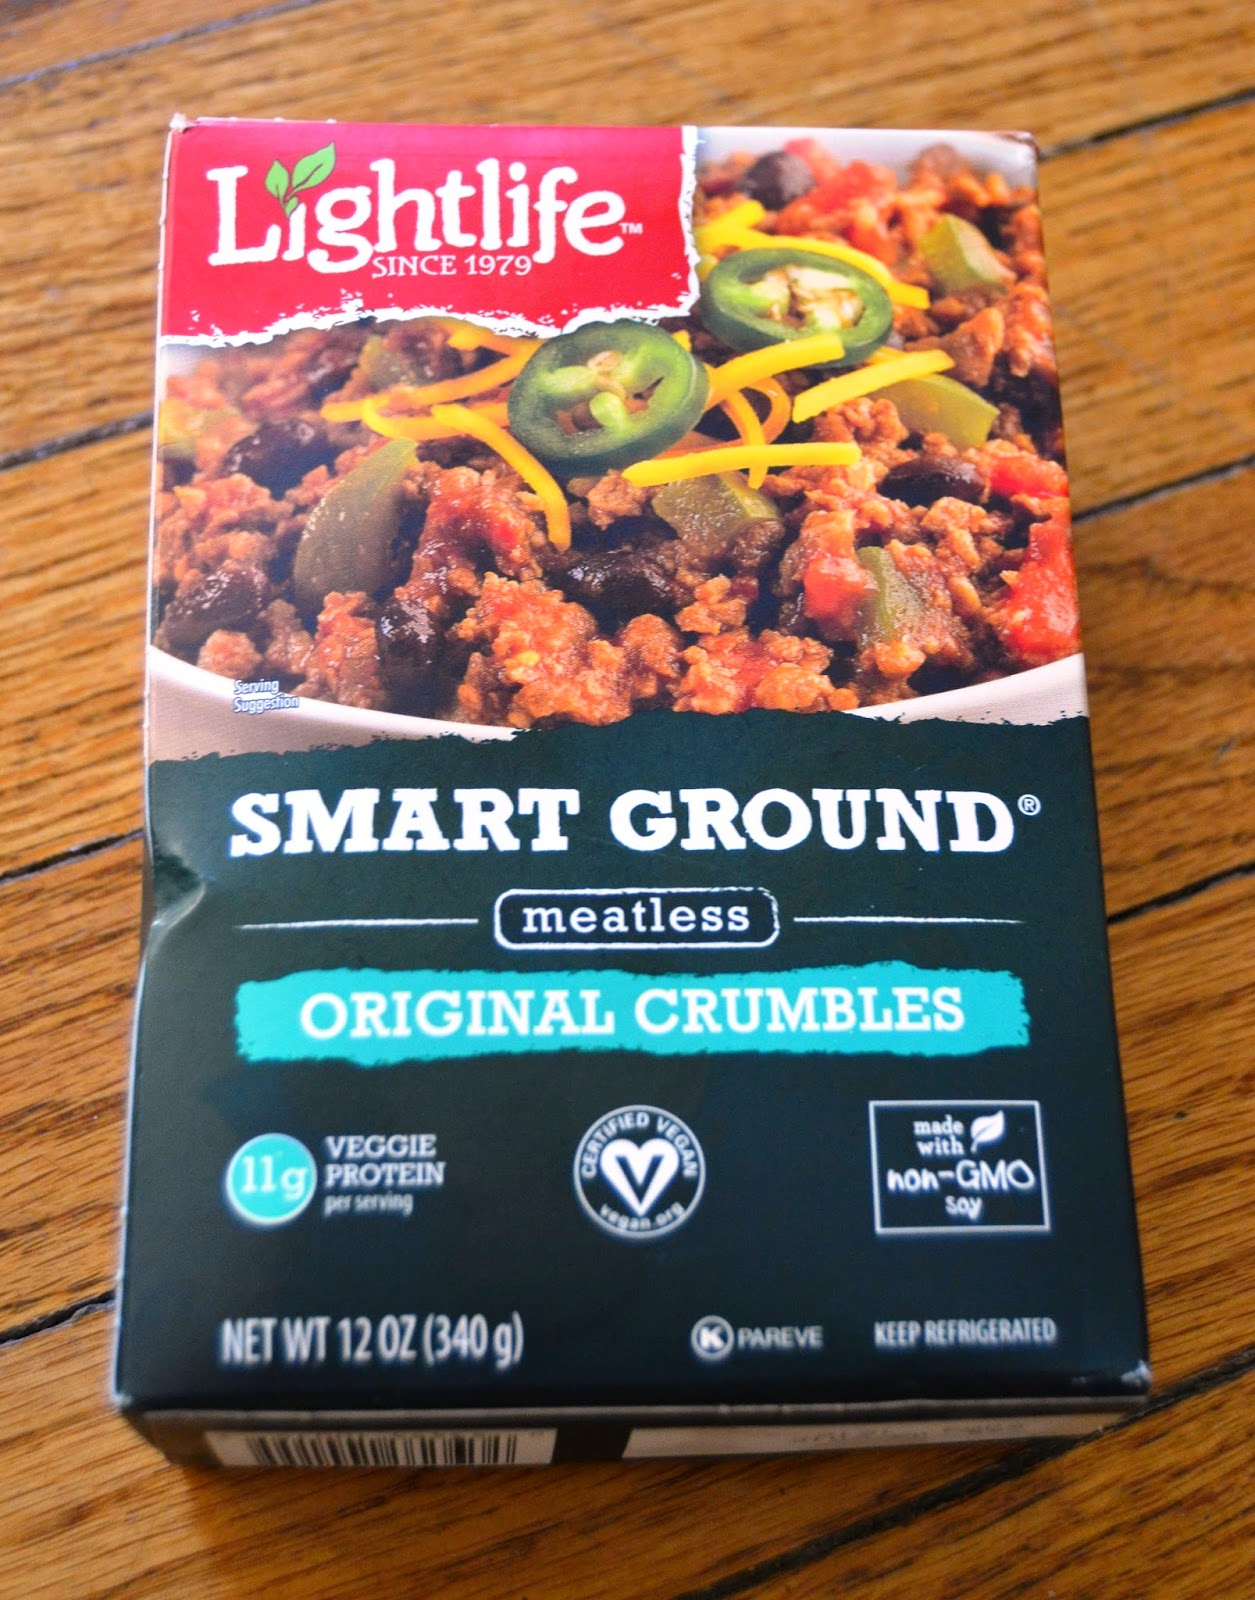 Lightlife Smart Ground Meatless Crumbles